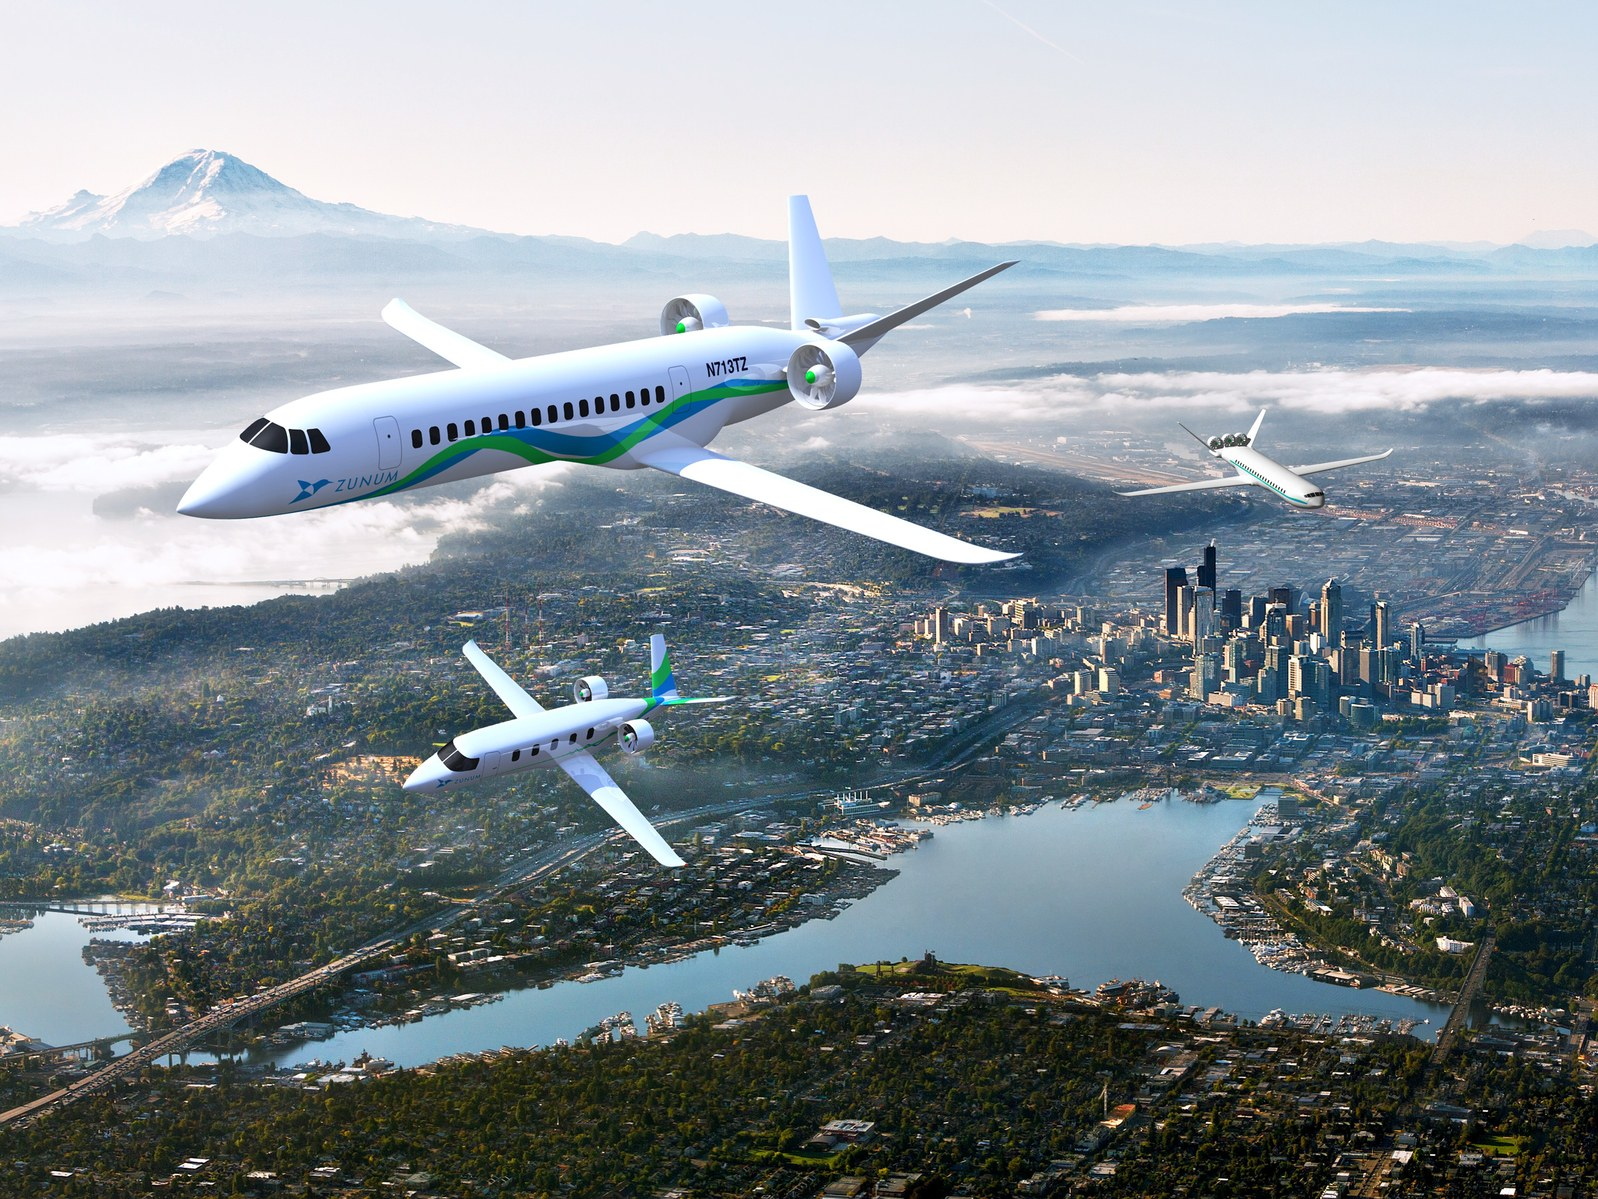 Will Toronto miss out on aviations green revolution?